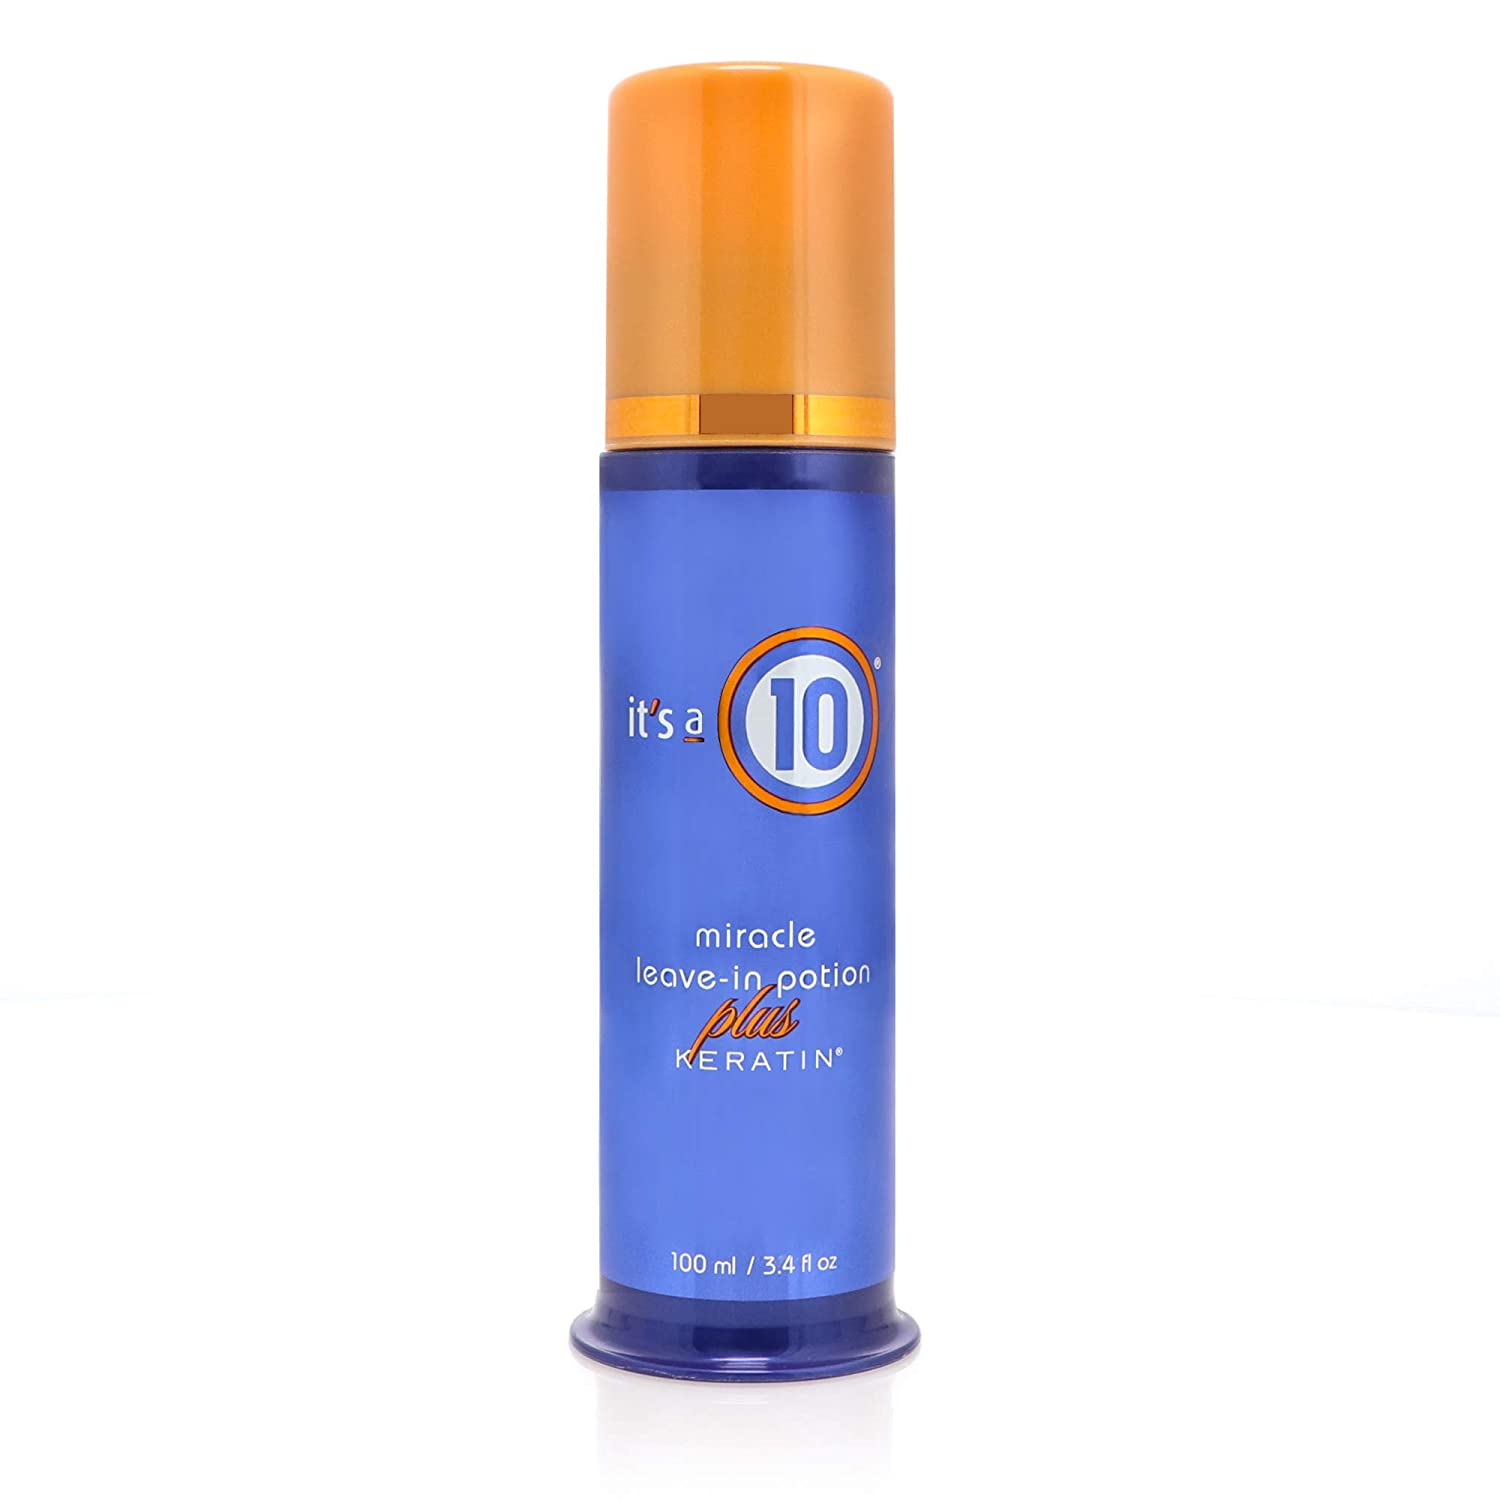 It's a 10 Haircare Miracle Leave-In Potion Plus Keratin, 3.4 fl. oz.